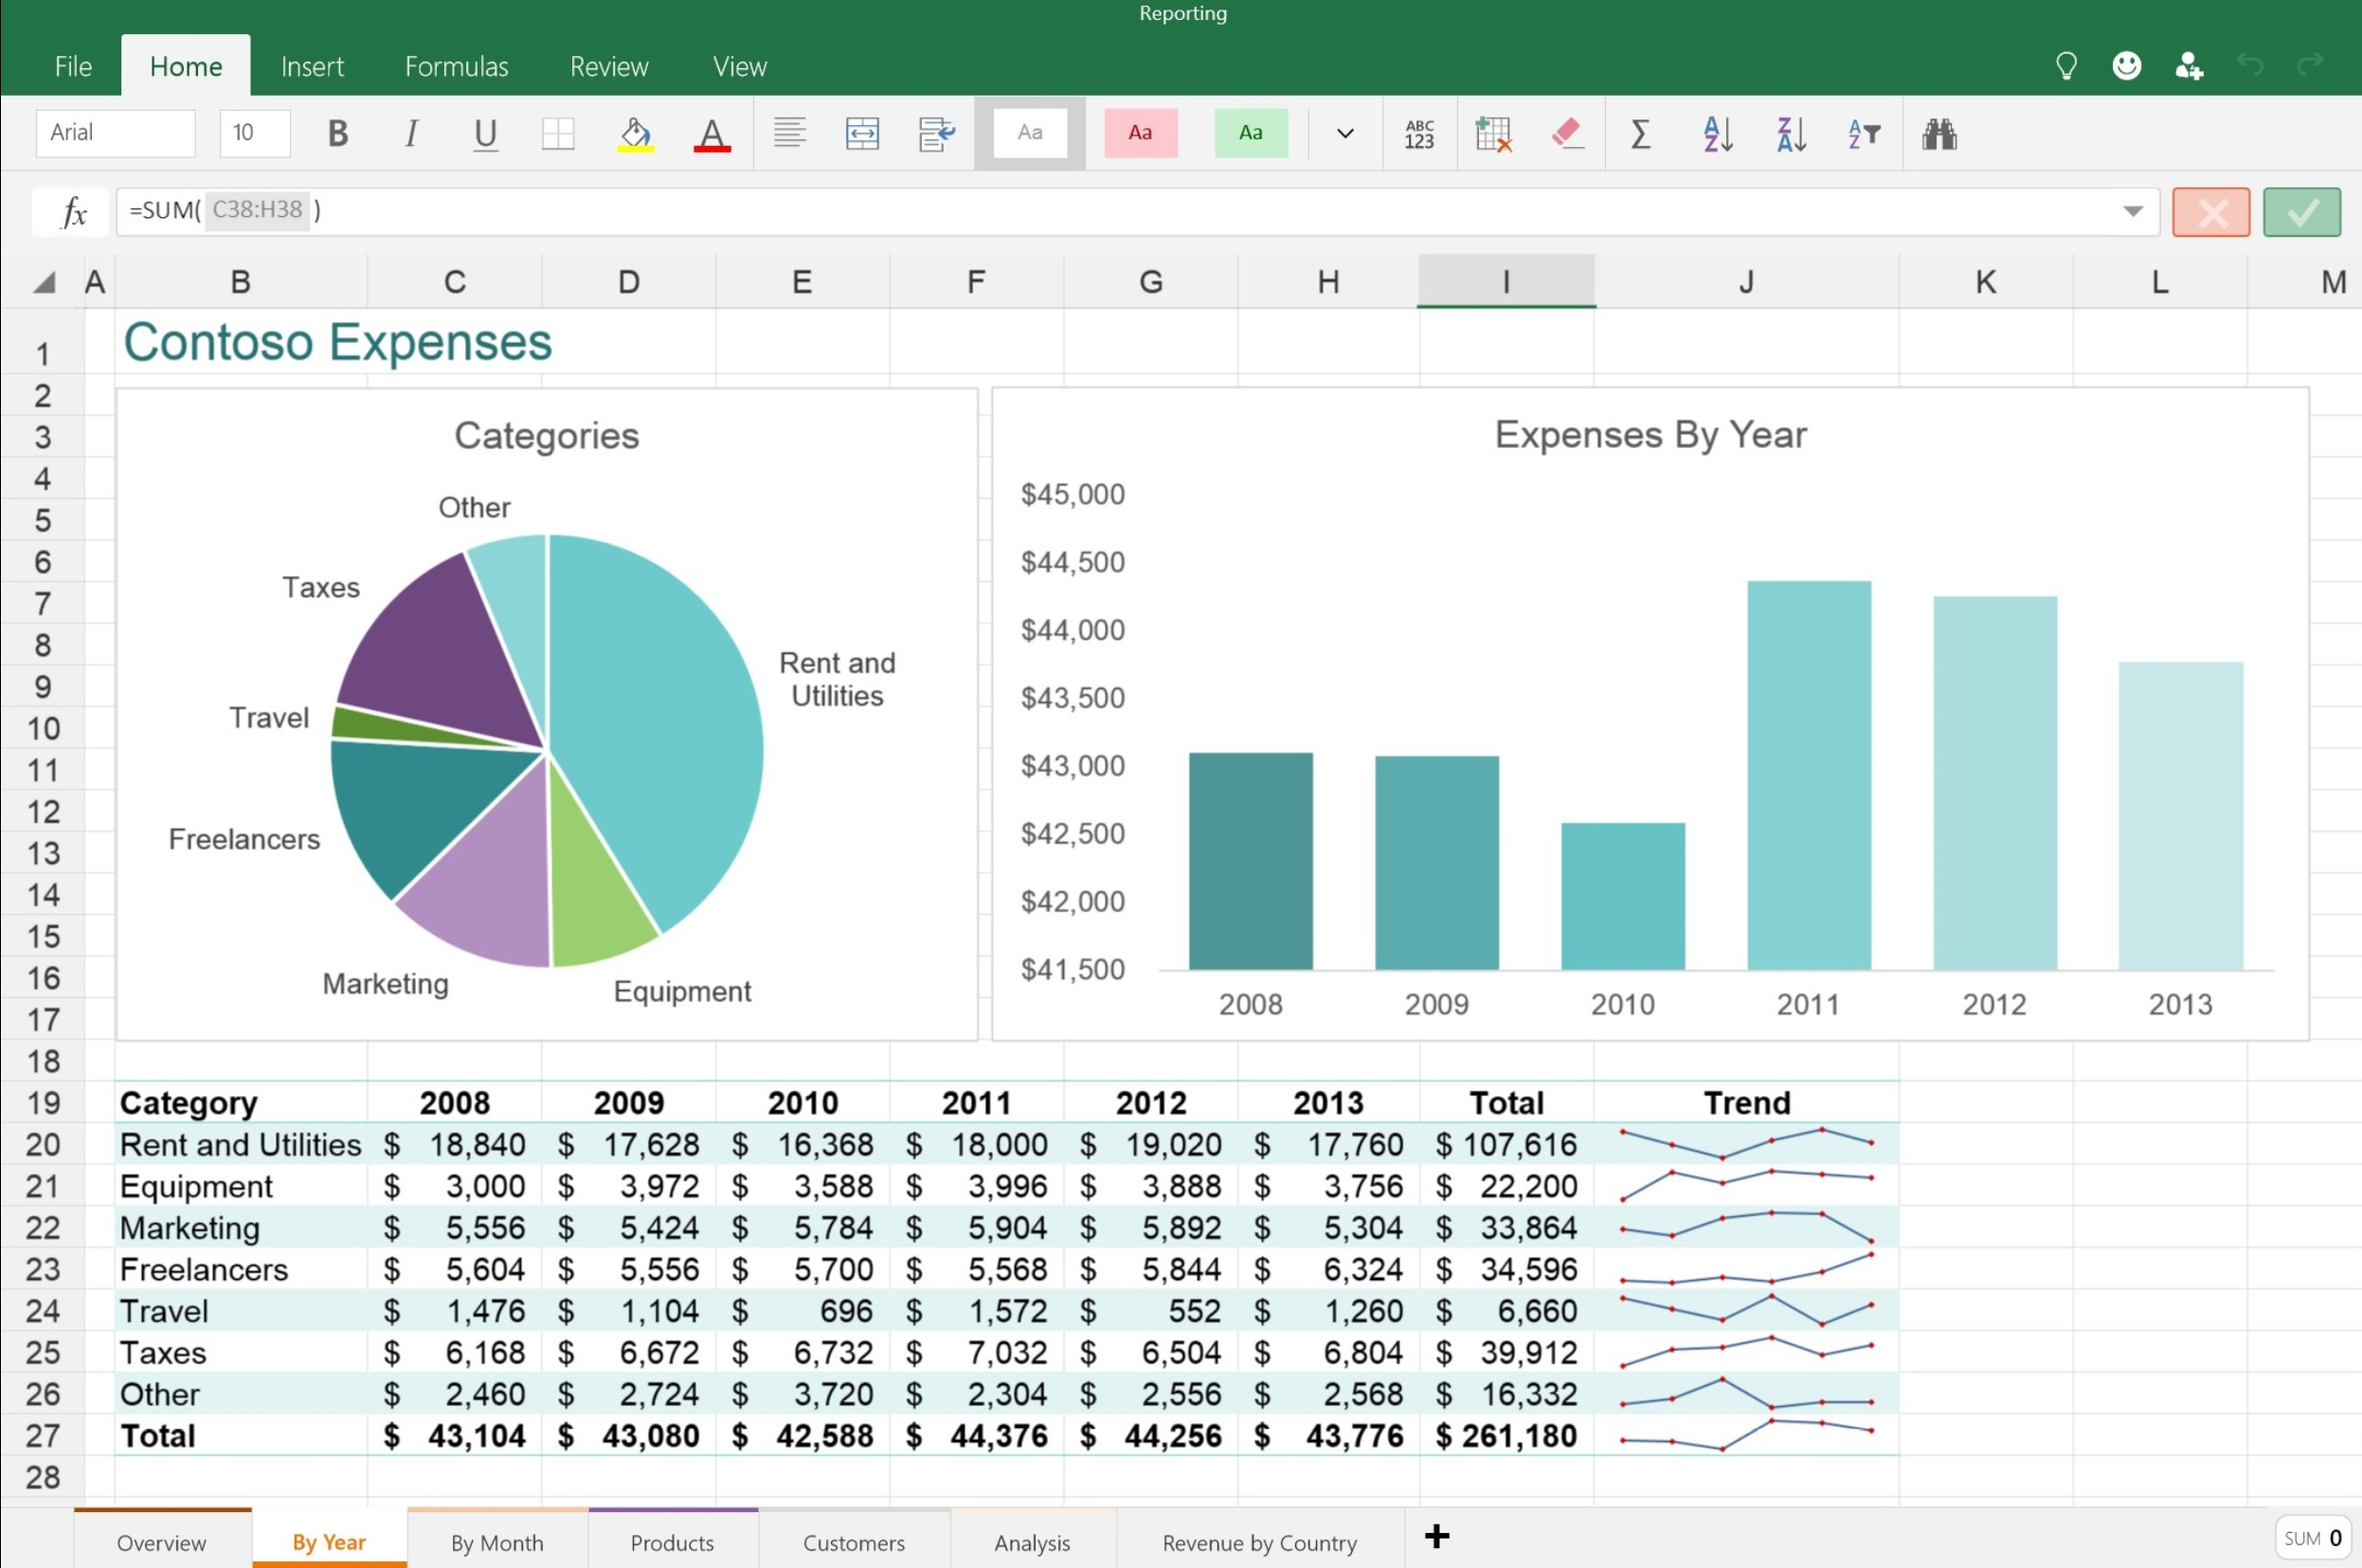 Ediblewildsus  Gorgeous Features Available In The New Word Excel And Powerpoint Apps For  With Fetching Excel Touch App  With Adorable How To Make A Chart Using Excel Also How To Make A Secondary Axis In Excel In Addition How Do You Create A Pie Chart In Excel And Right Formula In Excel As Well As Entering A Formula In Excel Additionally If Vba Excel From Mspowerusercom With Ediblewildsus  Fetching Features Available In The New Word Excel And Powerpoint Apps For  With Adorable Excel Touch App  And Gorgeous How To Make A Chart Using Excel Also How To Make A Secondary Axis In Excel In Addition How Do You Create A Pie Chart In Excel From Mspowerusercom